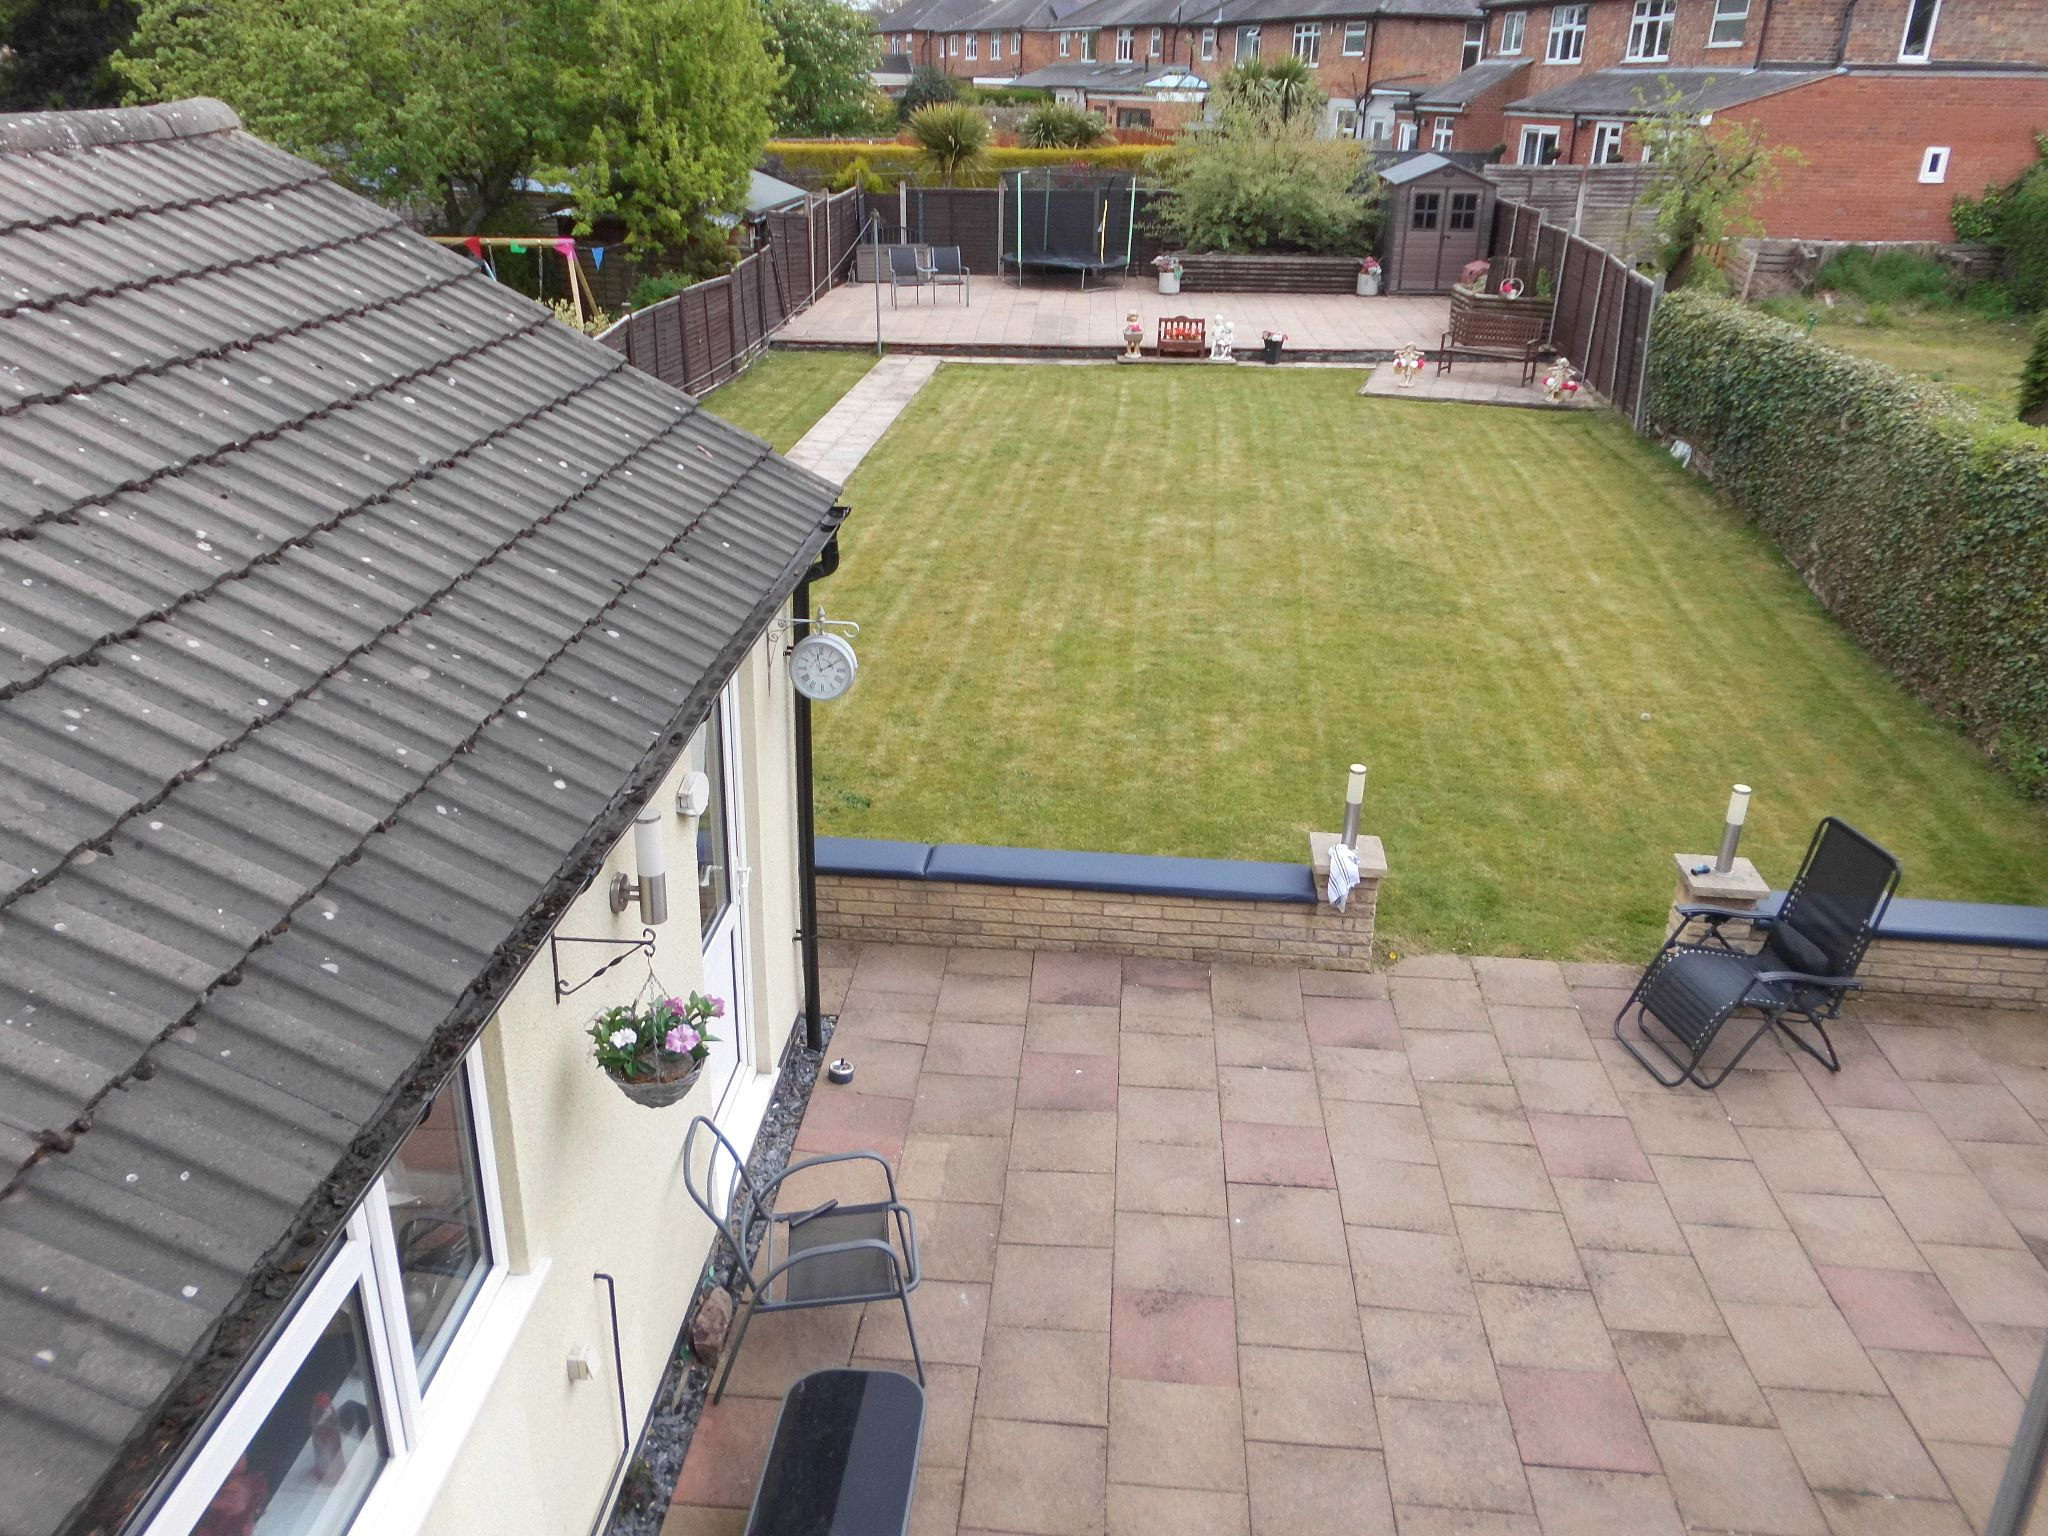 4 bedroom detached house For Sale in Leicester - Photograph 19.